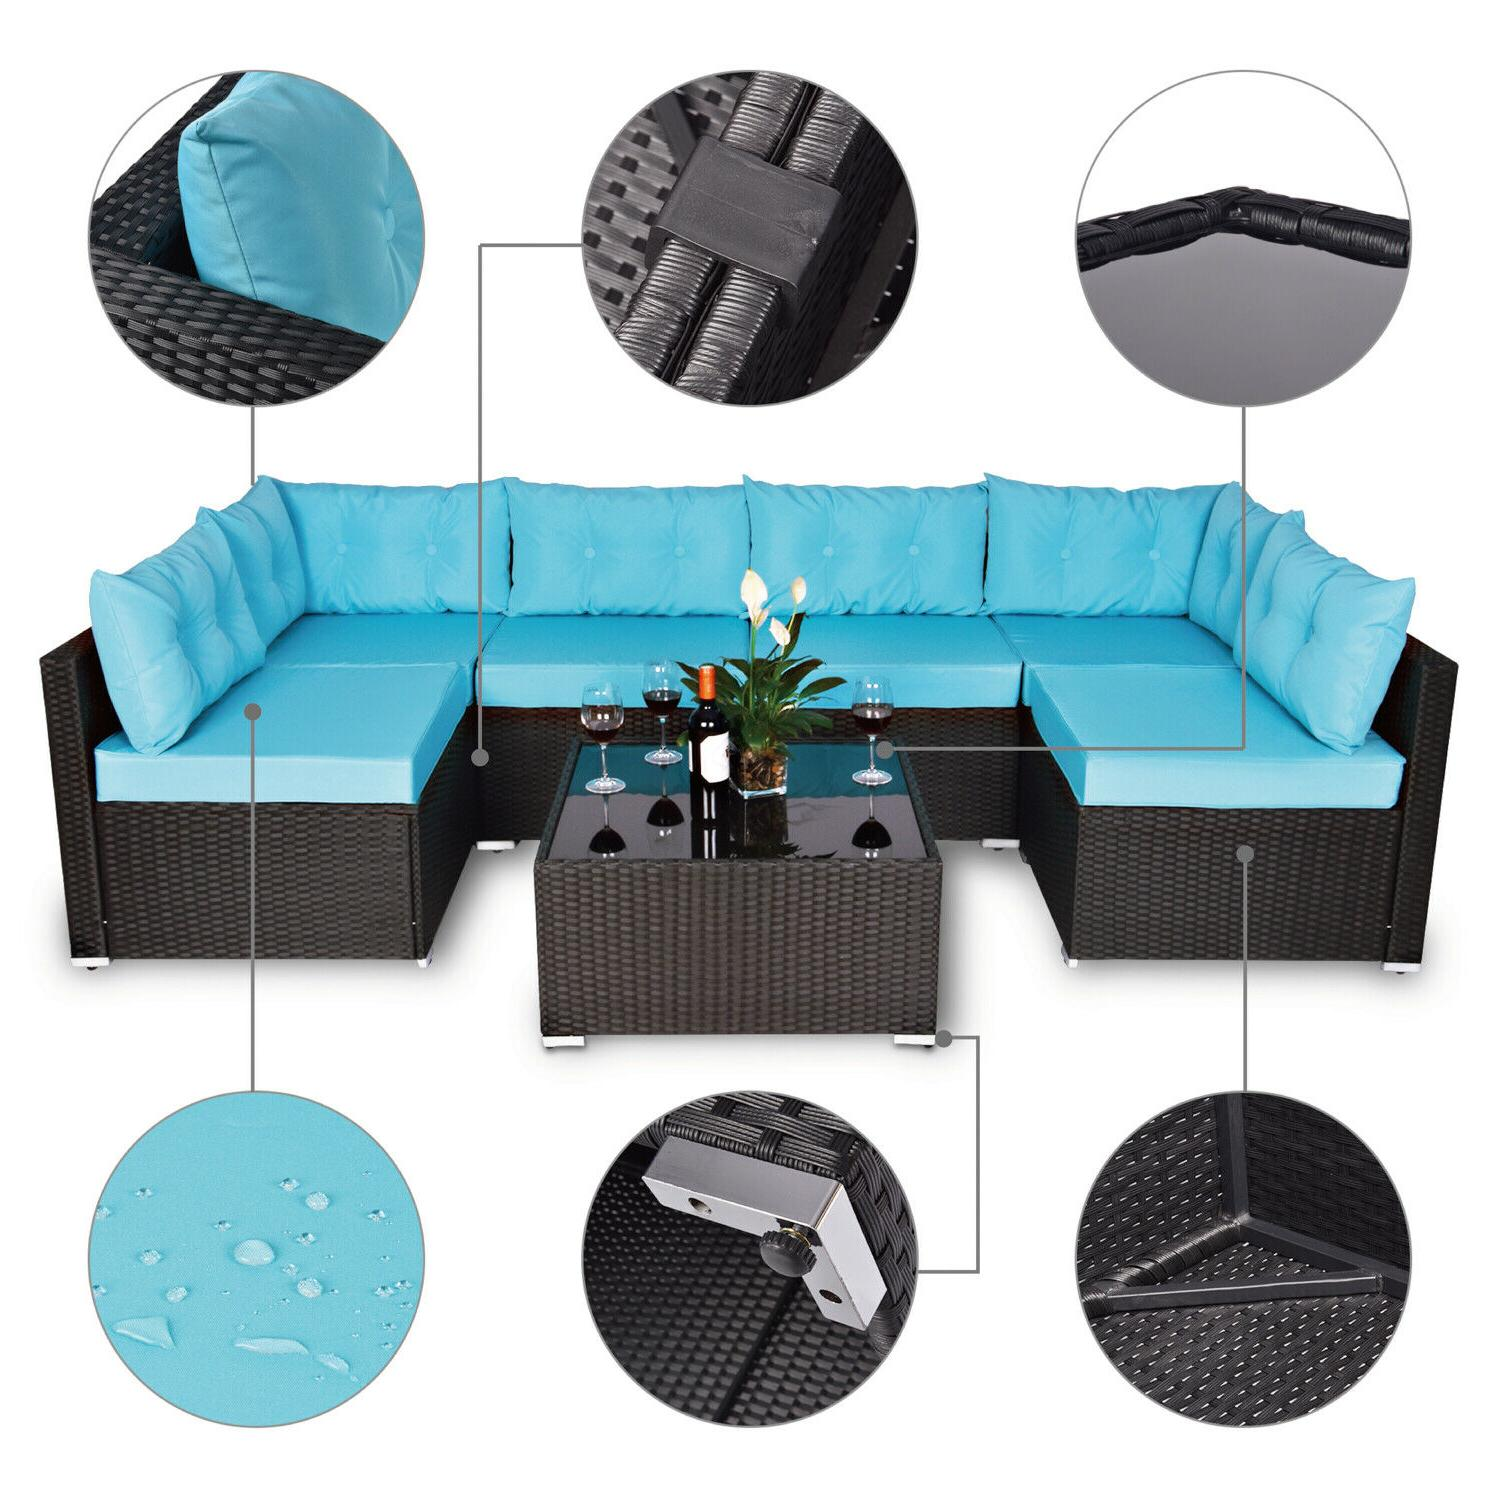 7 Patio Garden Set Rattan with Table Blue